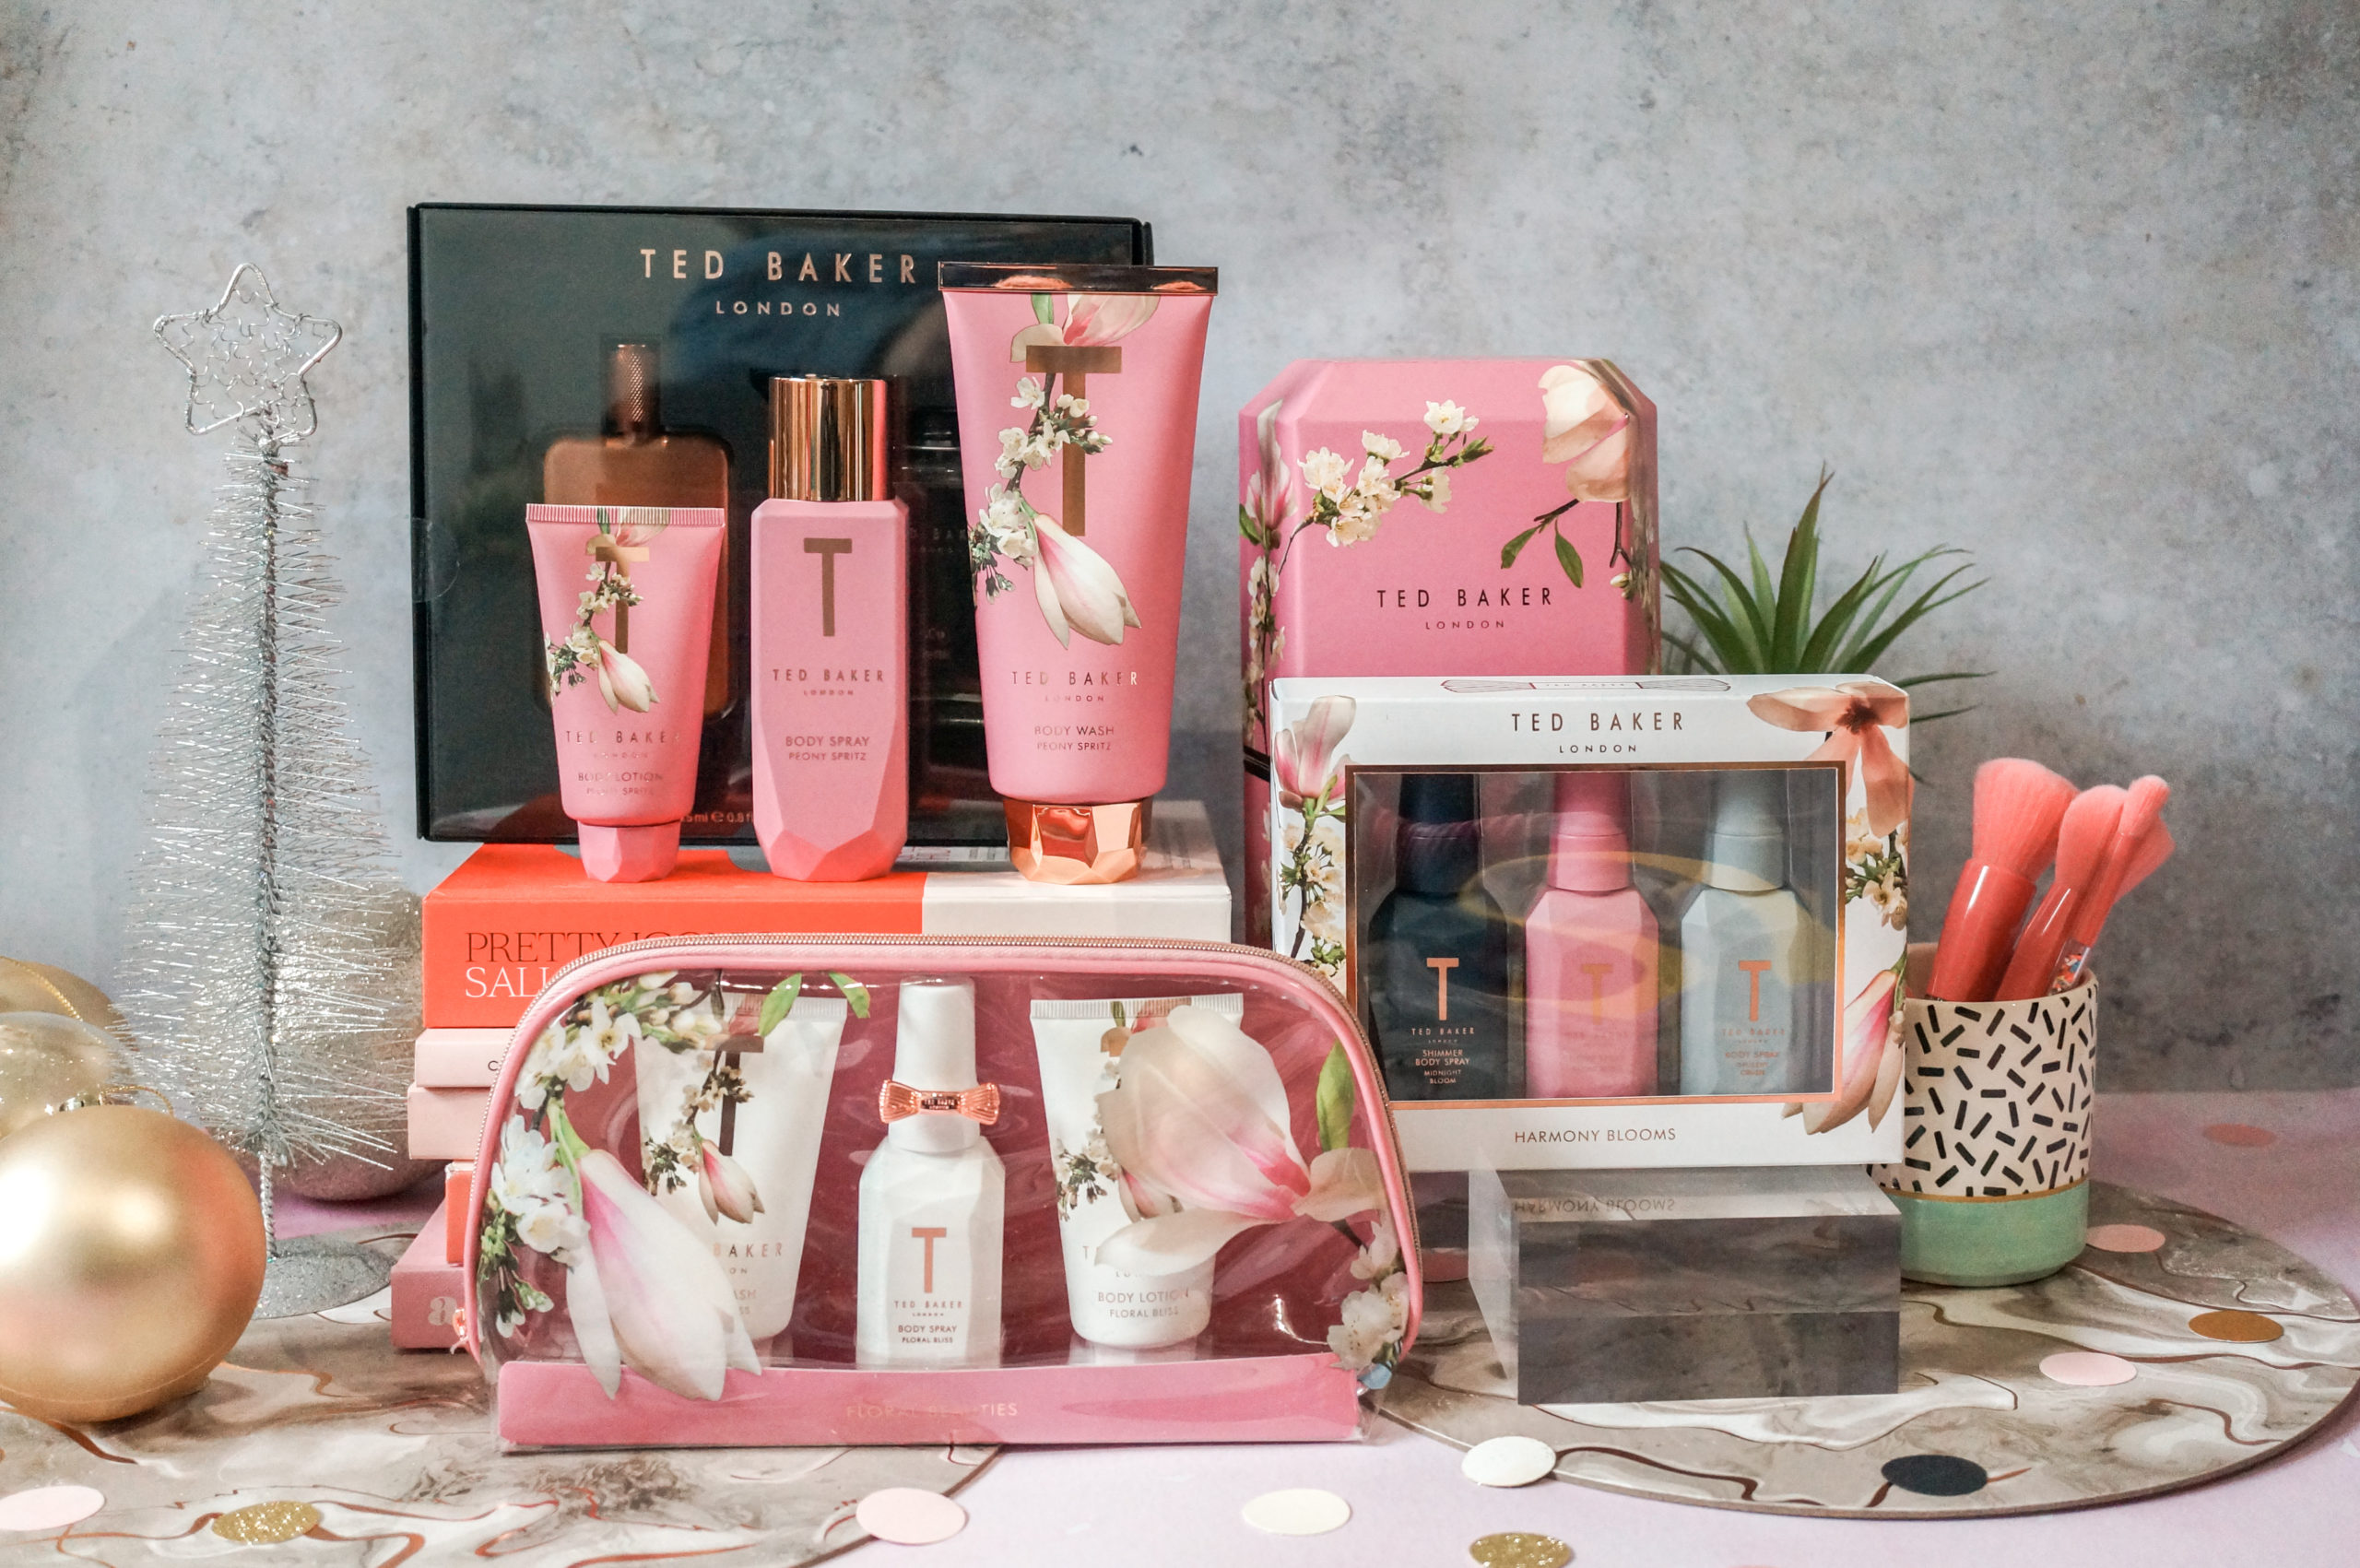 The Best Ted Baker Beauty Gift Sets For Christmas 2019